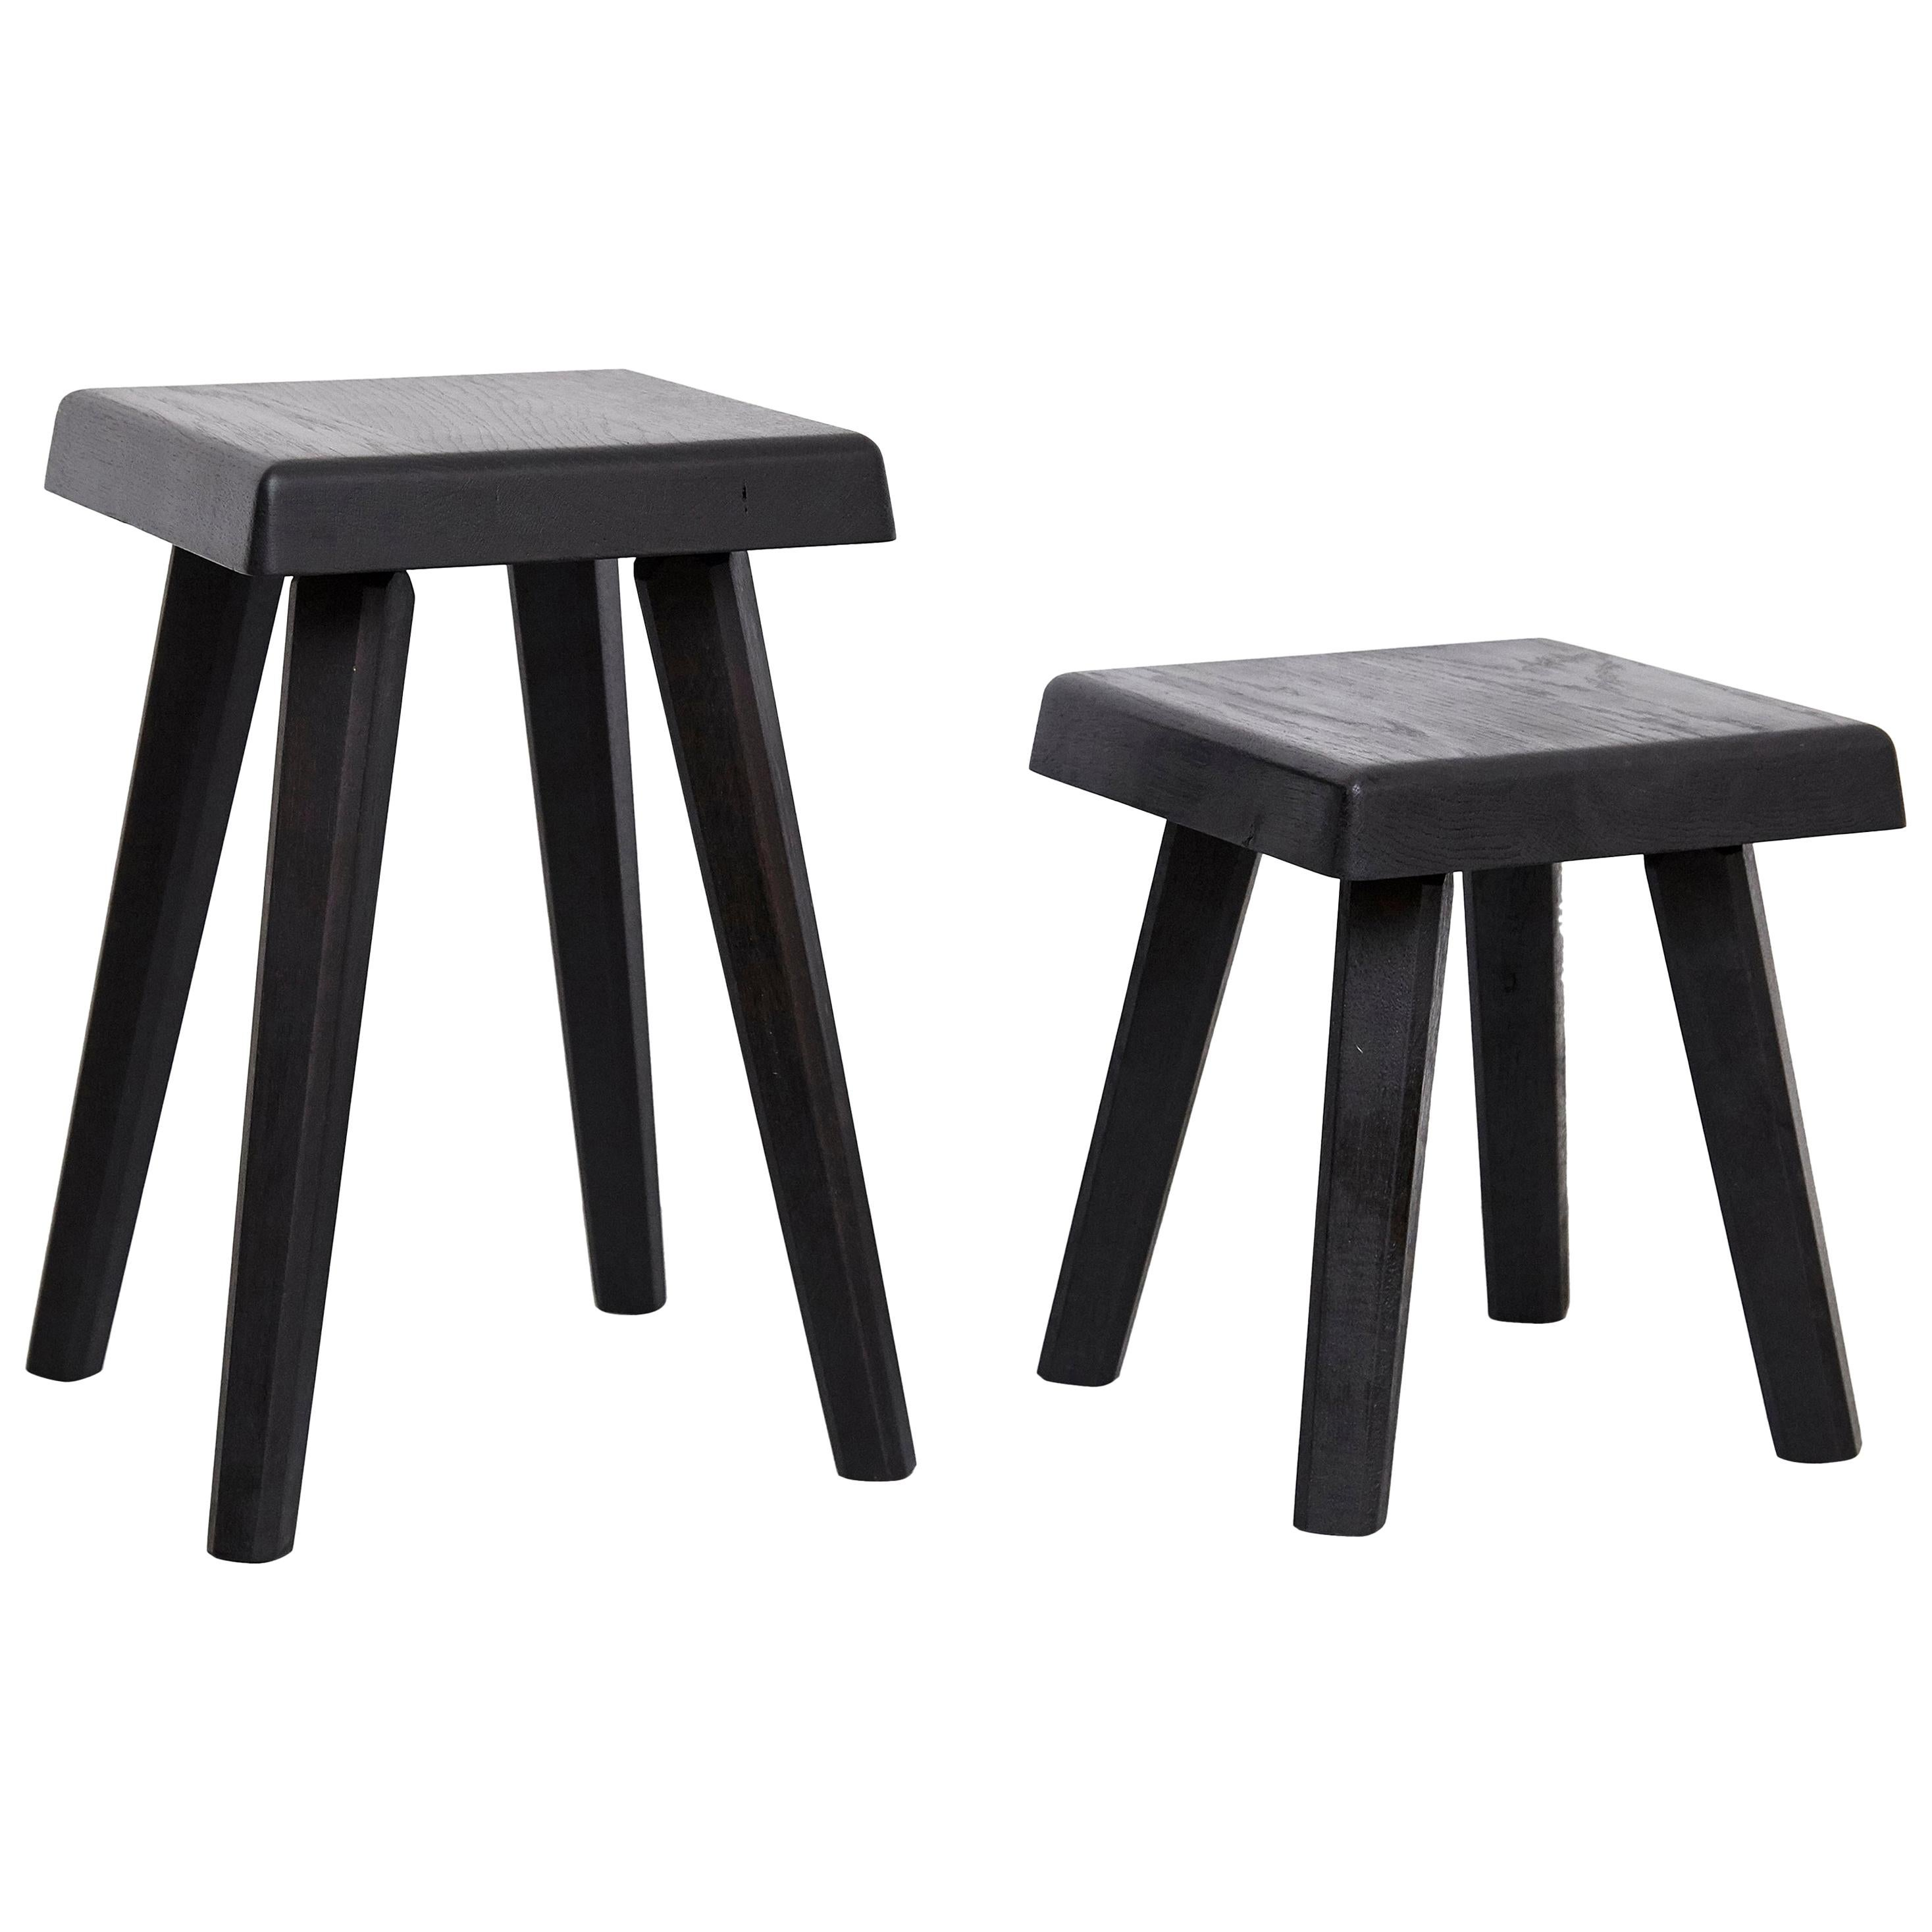 Pair of Pierre Chapo Special Black Wood Edition Stool